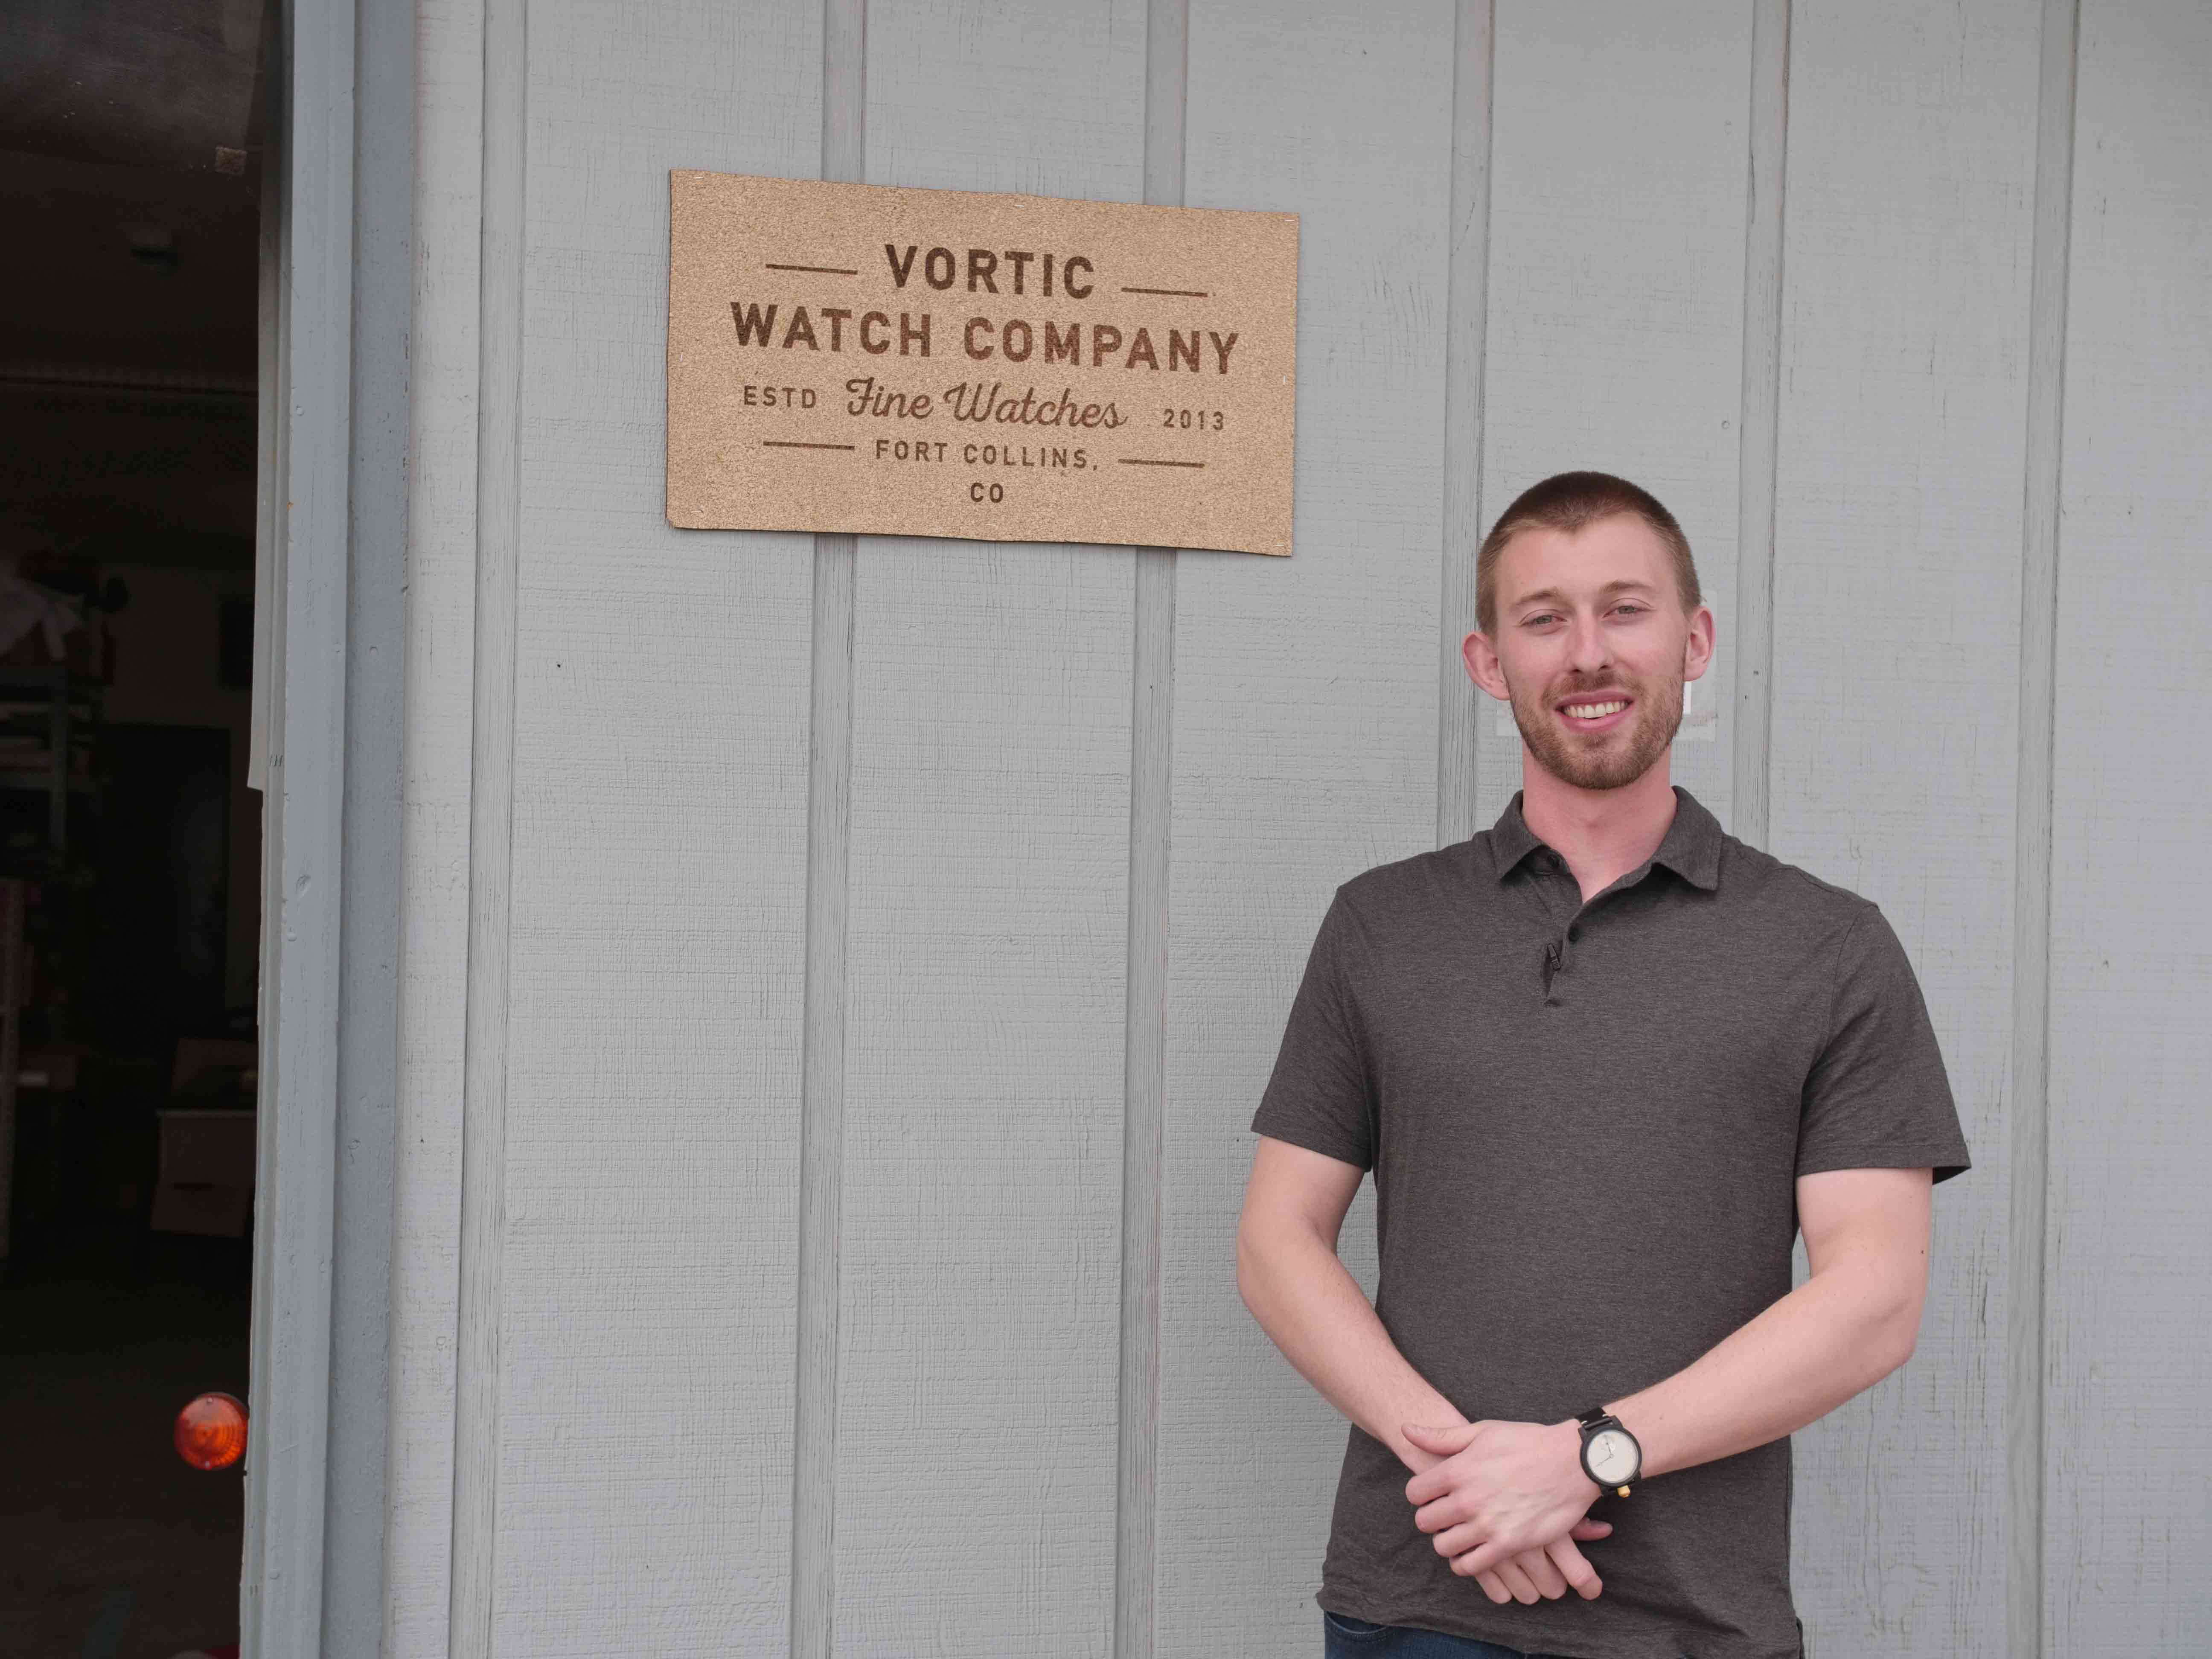 RT Vortic Watch Company - OnDeck Small Business Loans